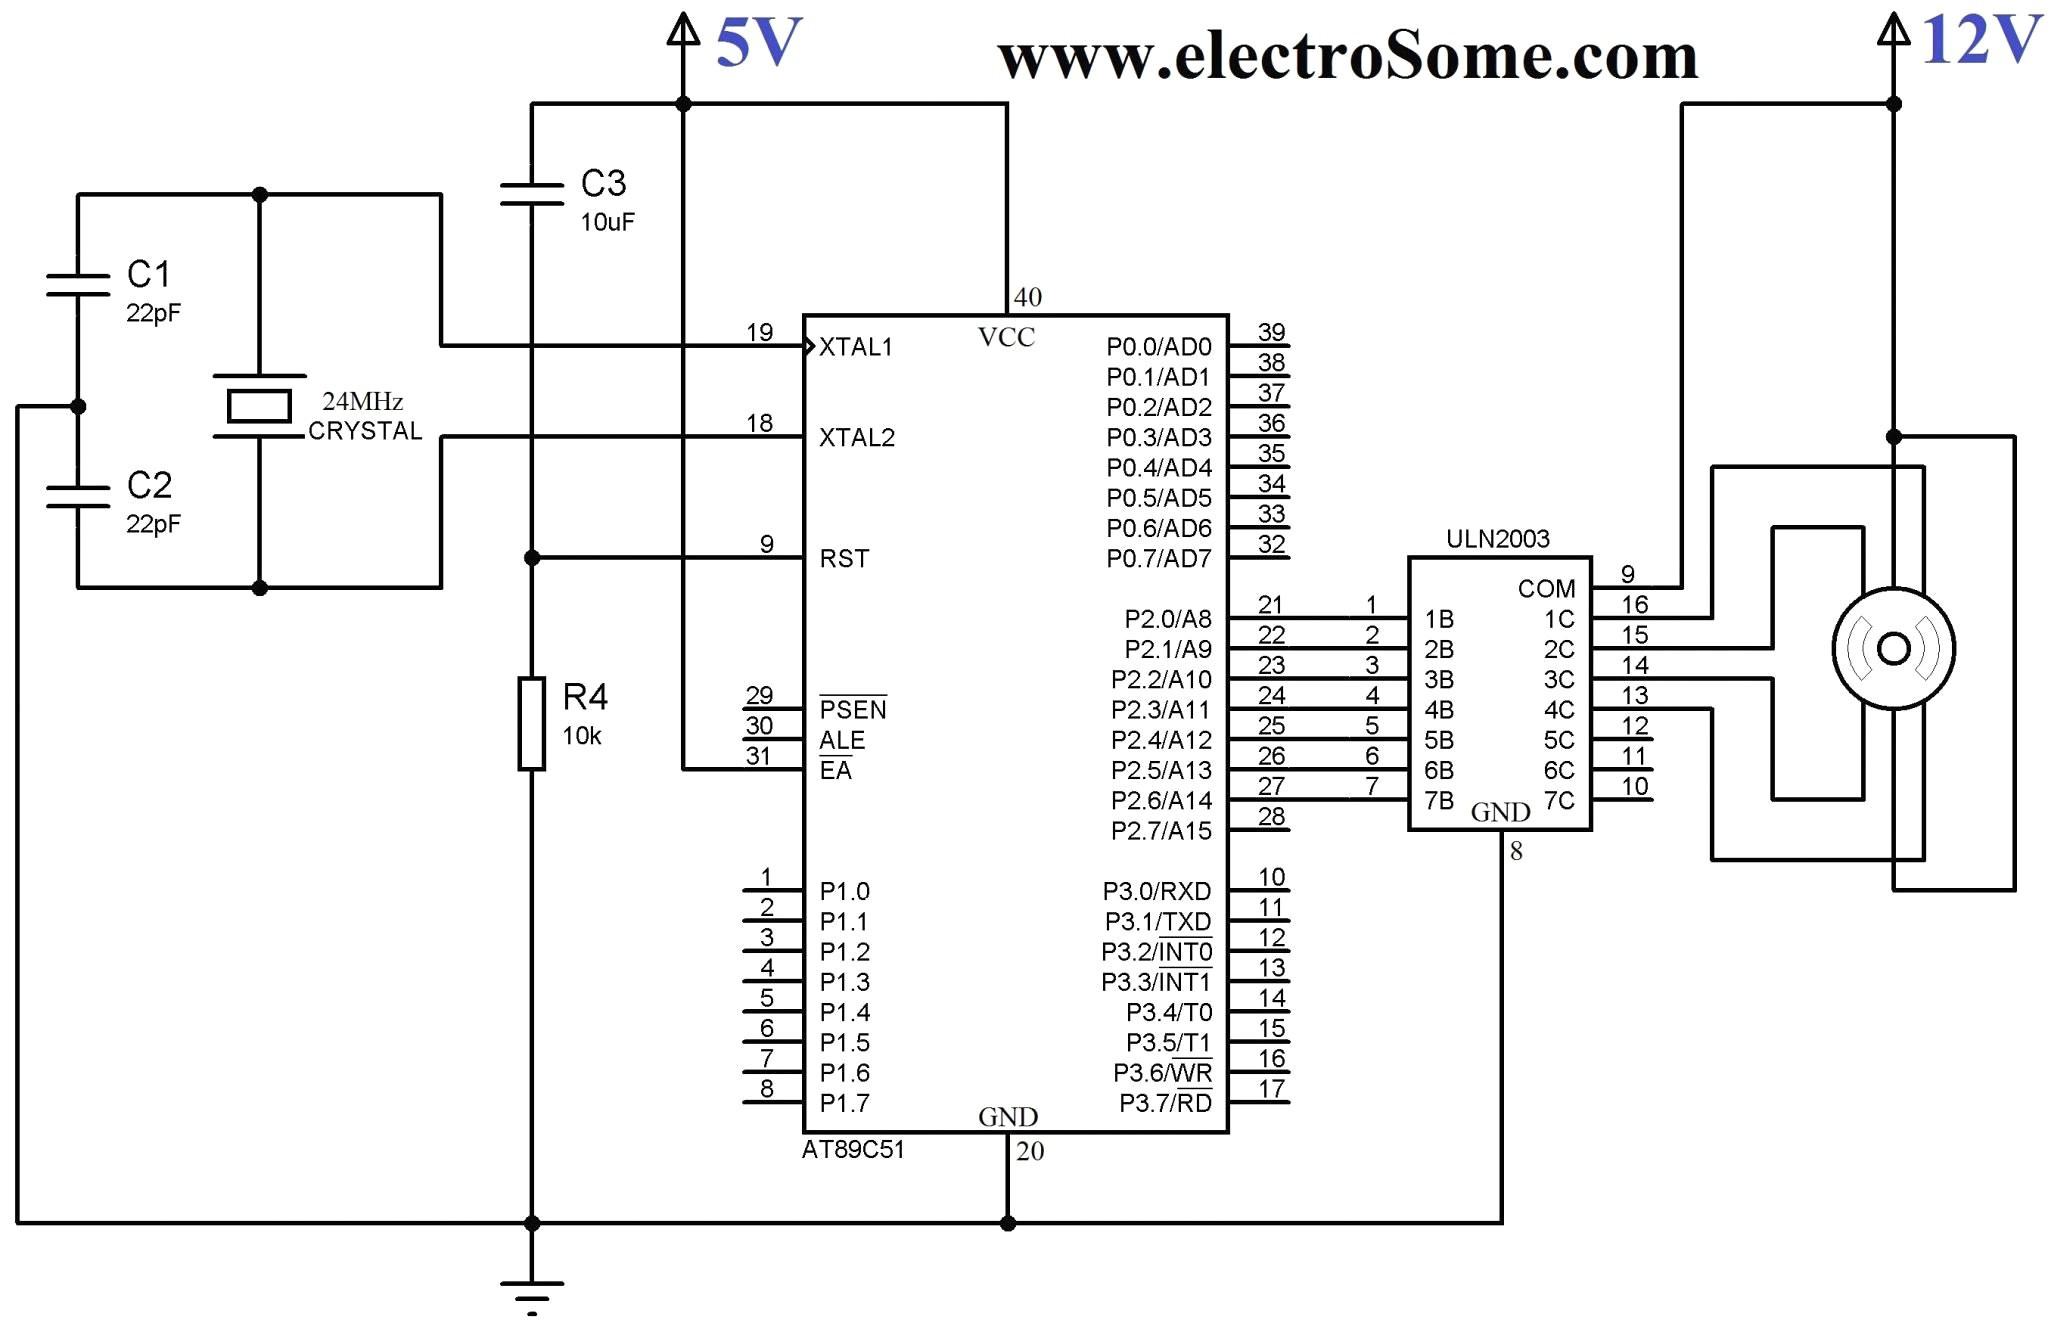 8 Pole Lighting Contactor Wiring Diagram